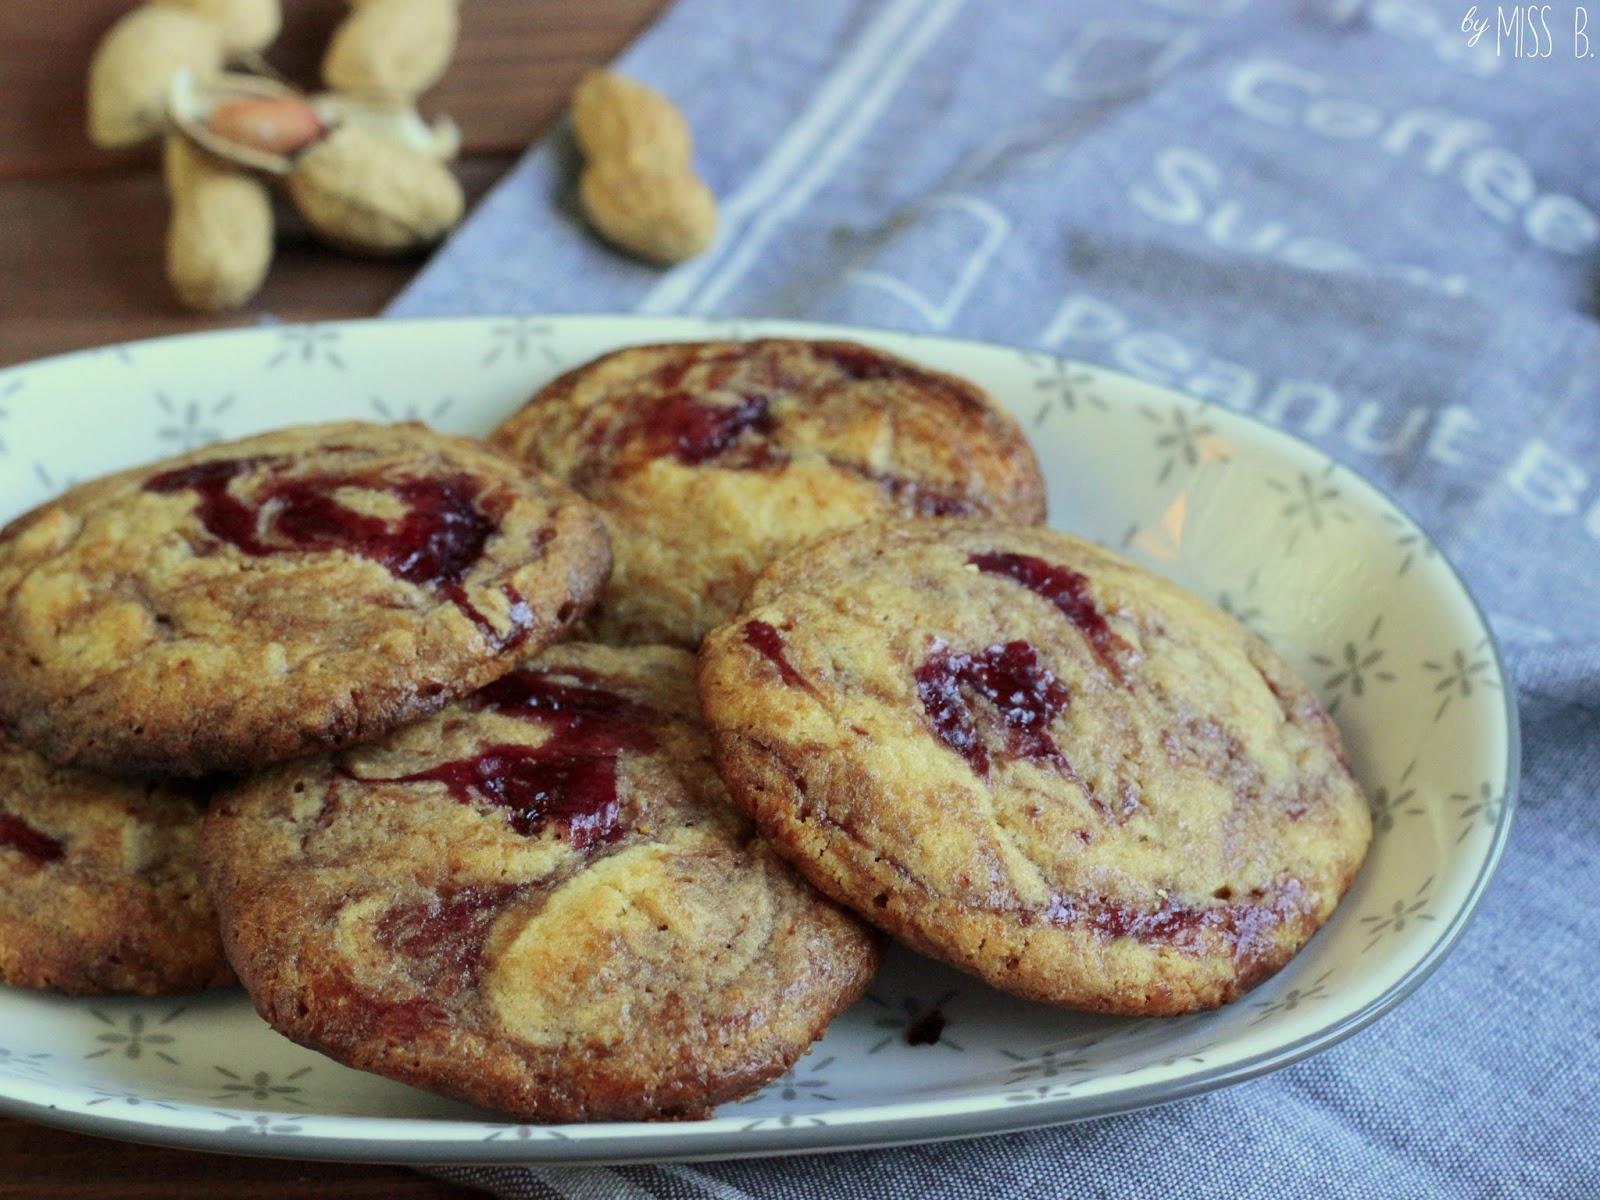 Peanutbutter-Jelly-Cookies - OH YEAH!